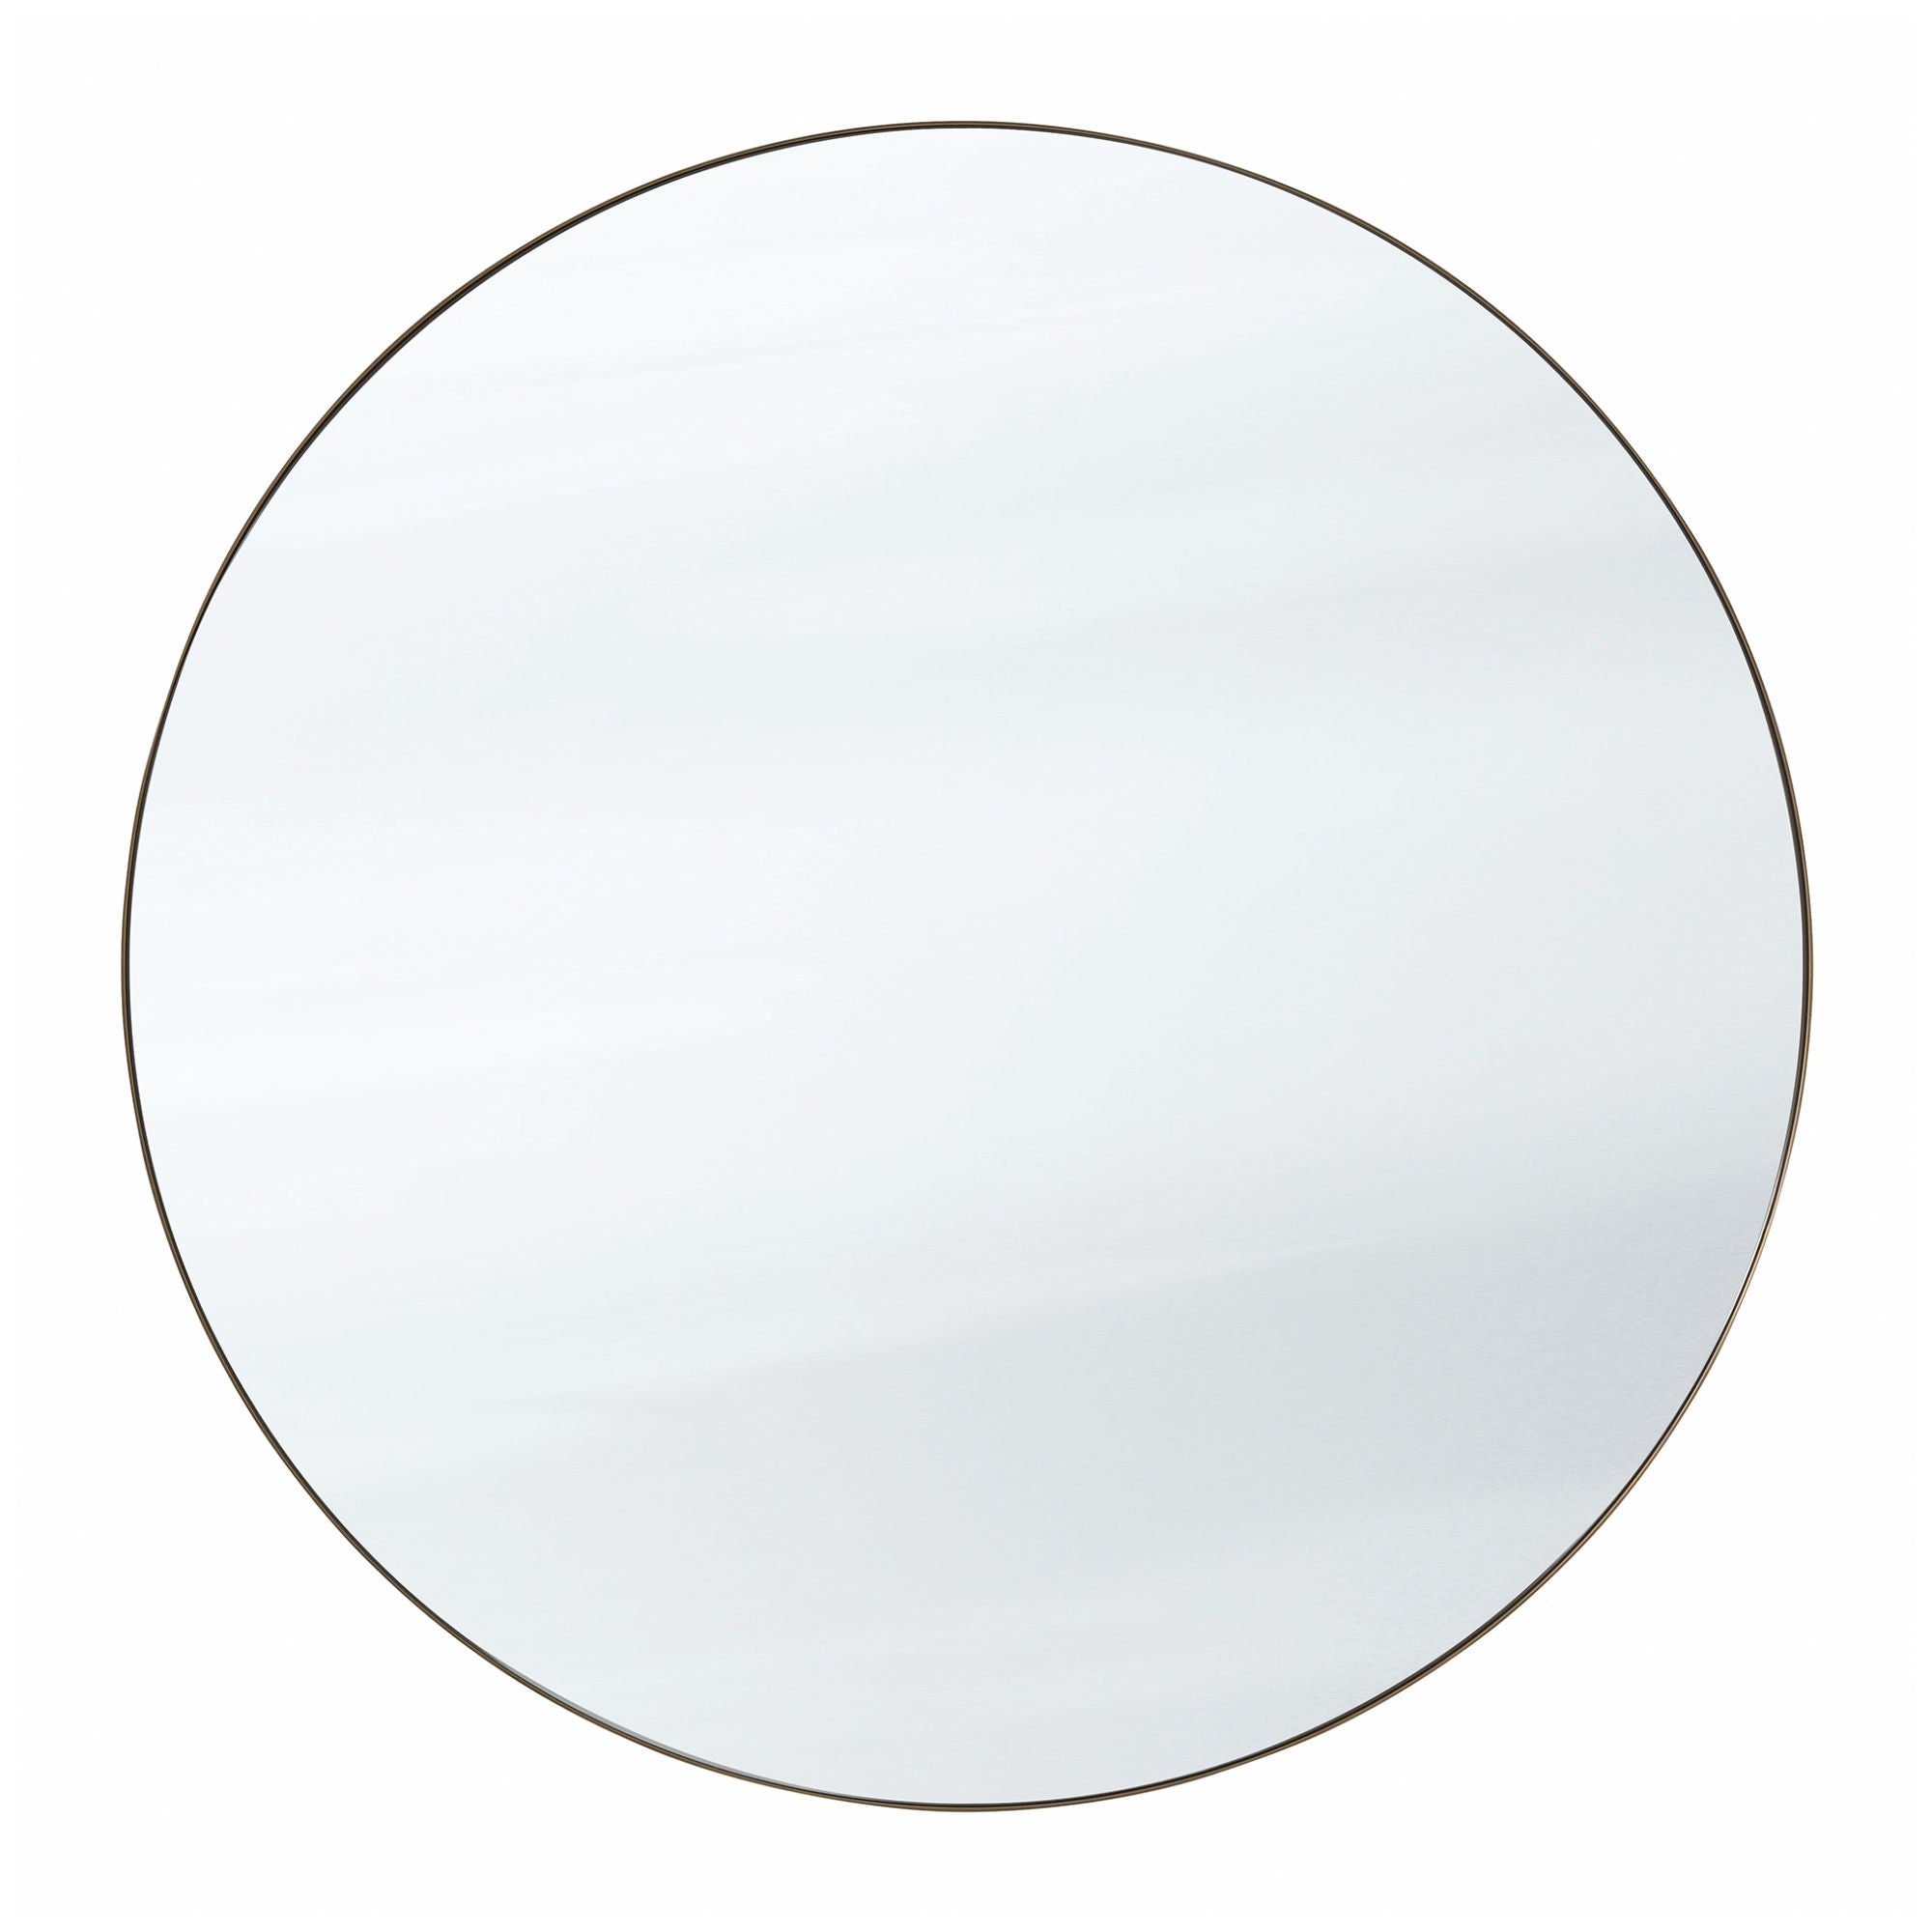 &Tradition SC49 Amore mirror Ø115cm